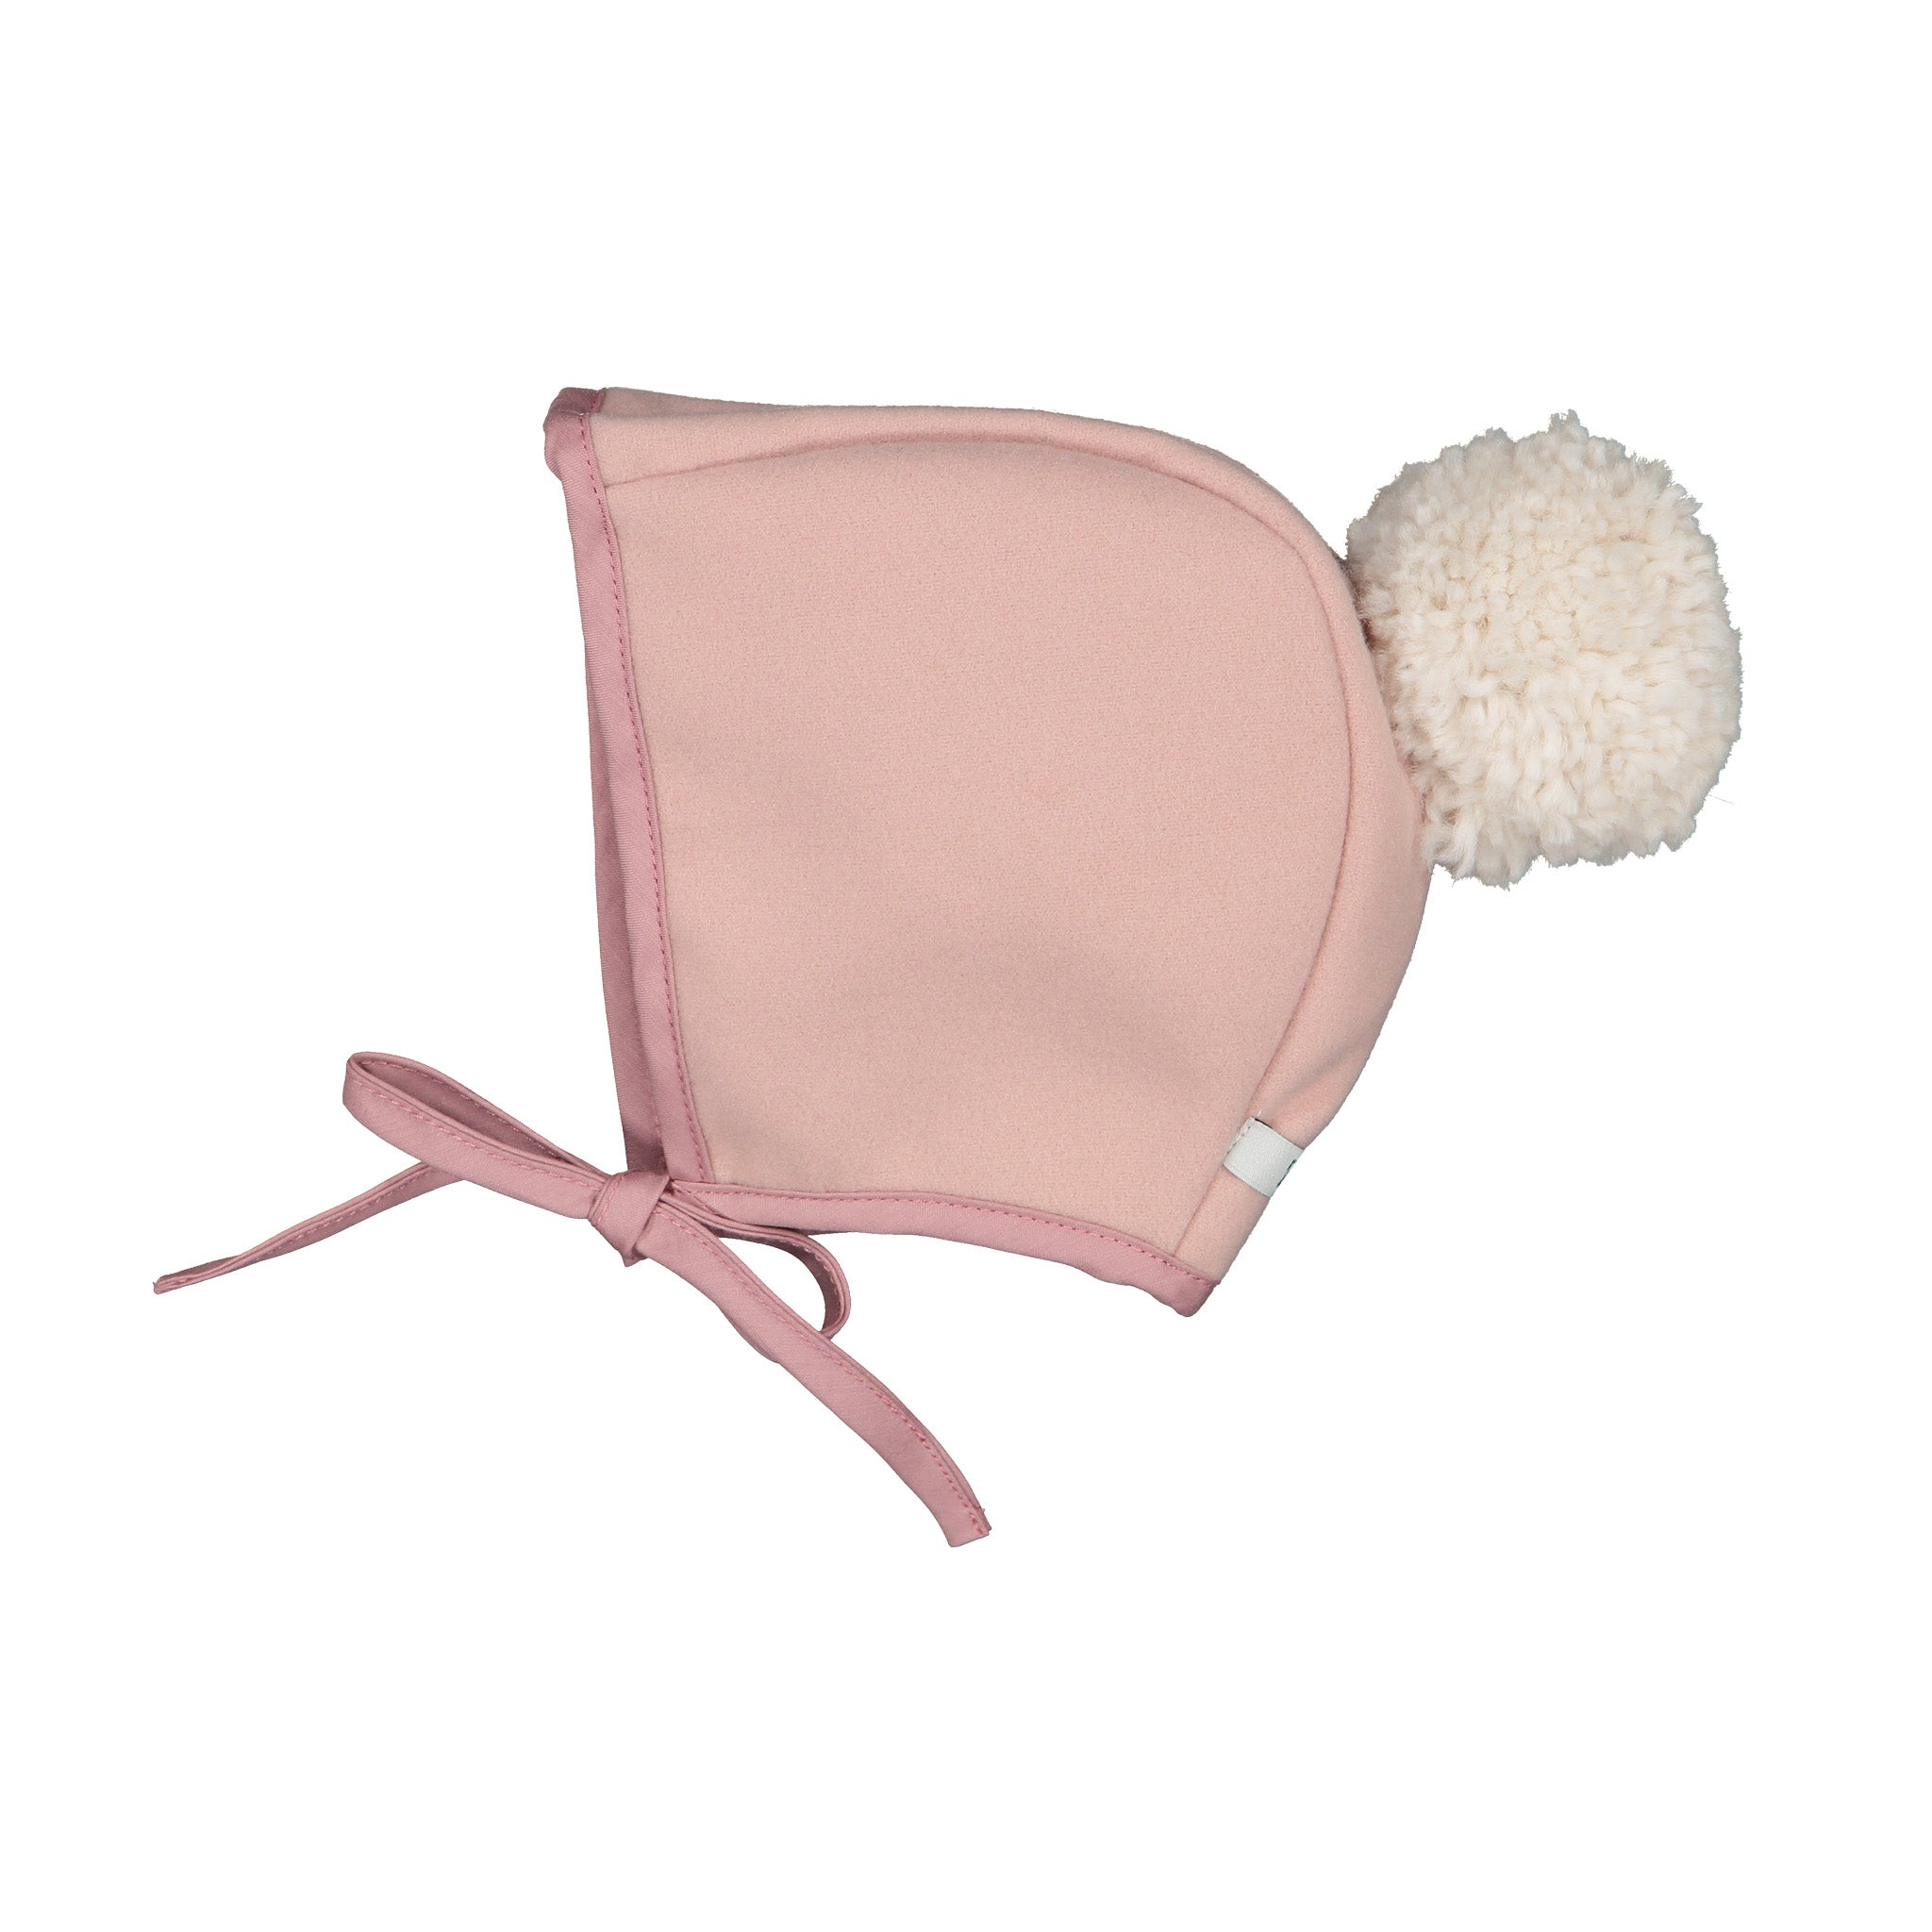 Winter Bonnet - Blush Ivory Pom Pom